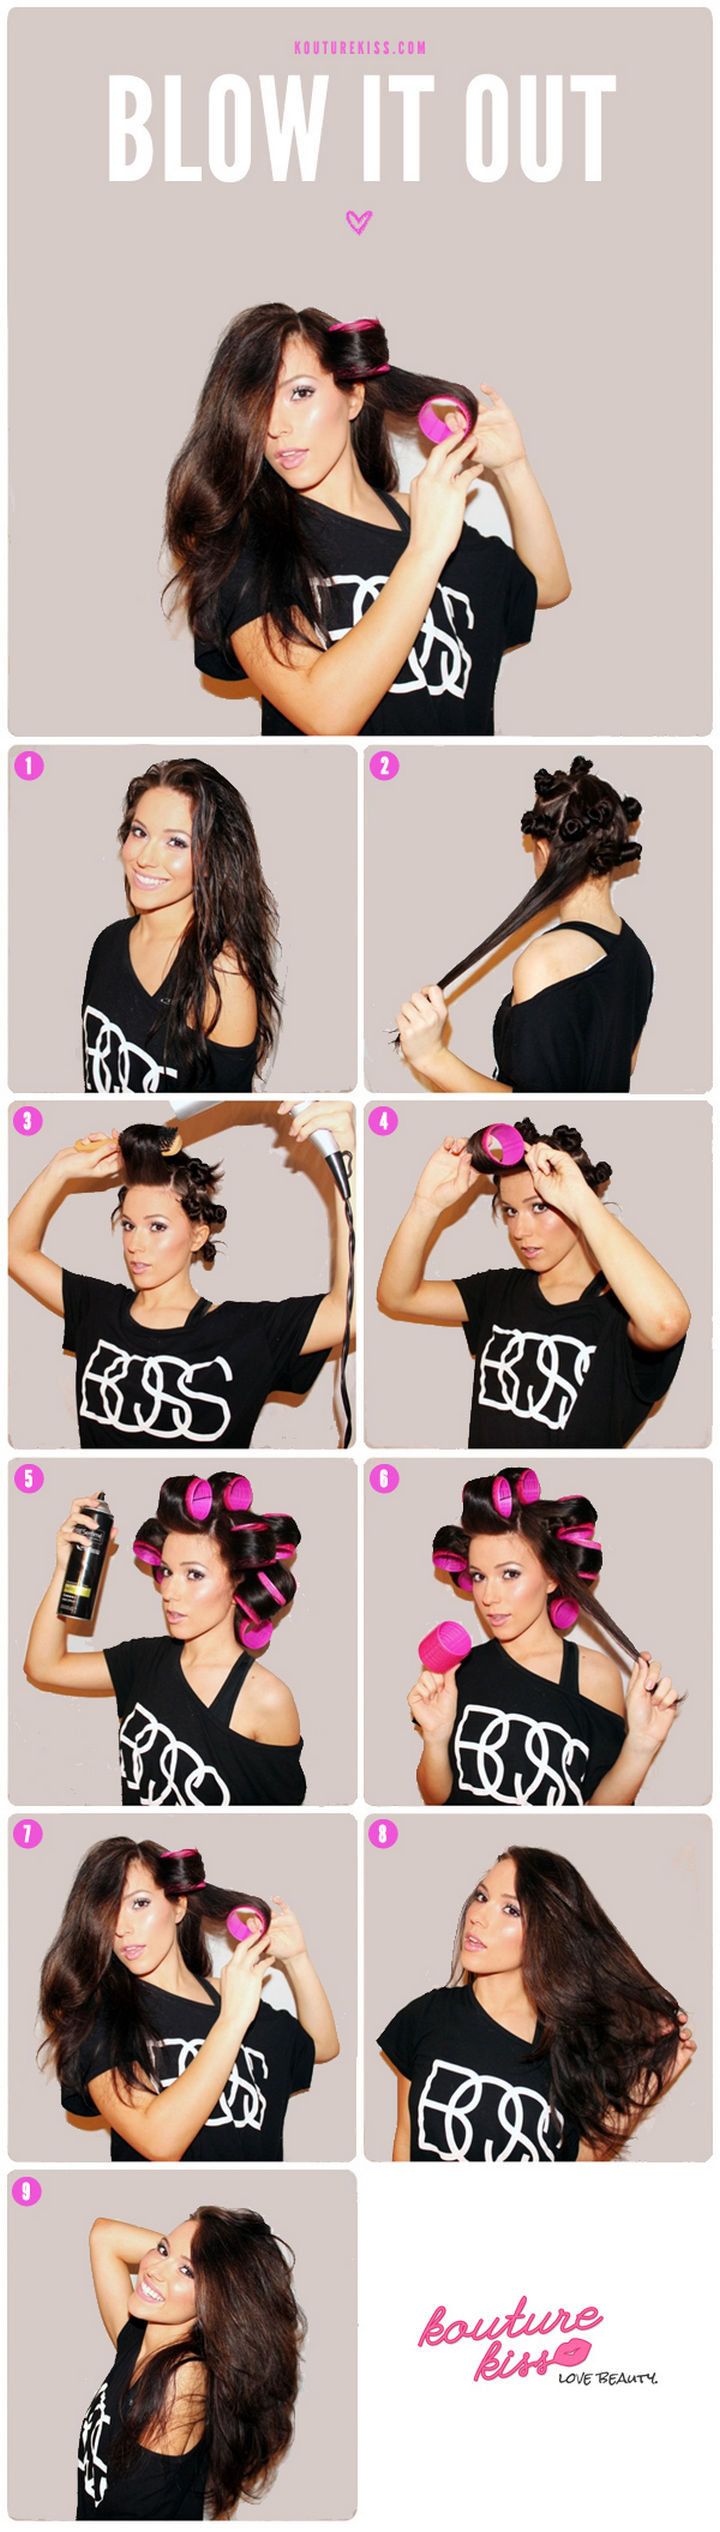 25 Lazy Girl Hair Hacks - Get a round brush blowout look without the effort by using self-grip velcro rollers.